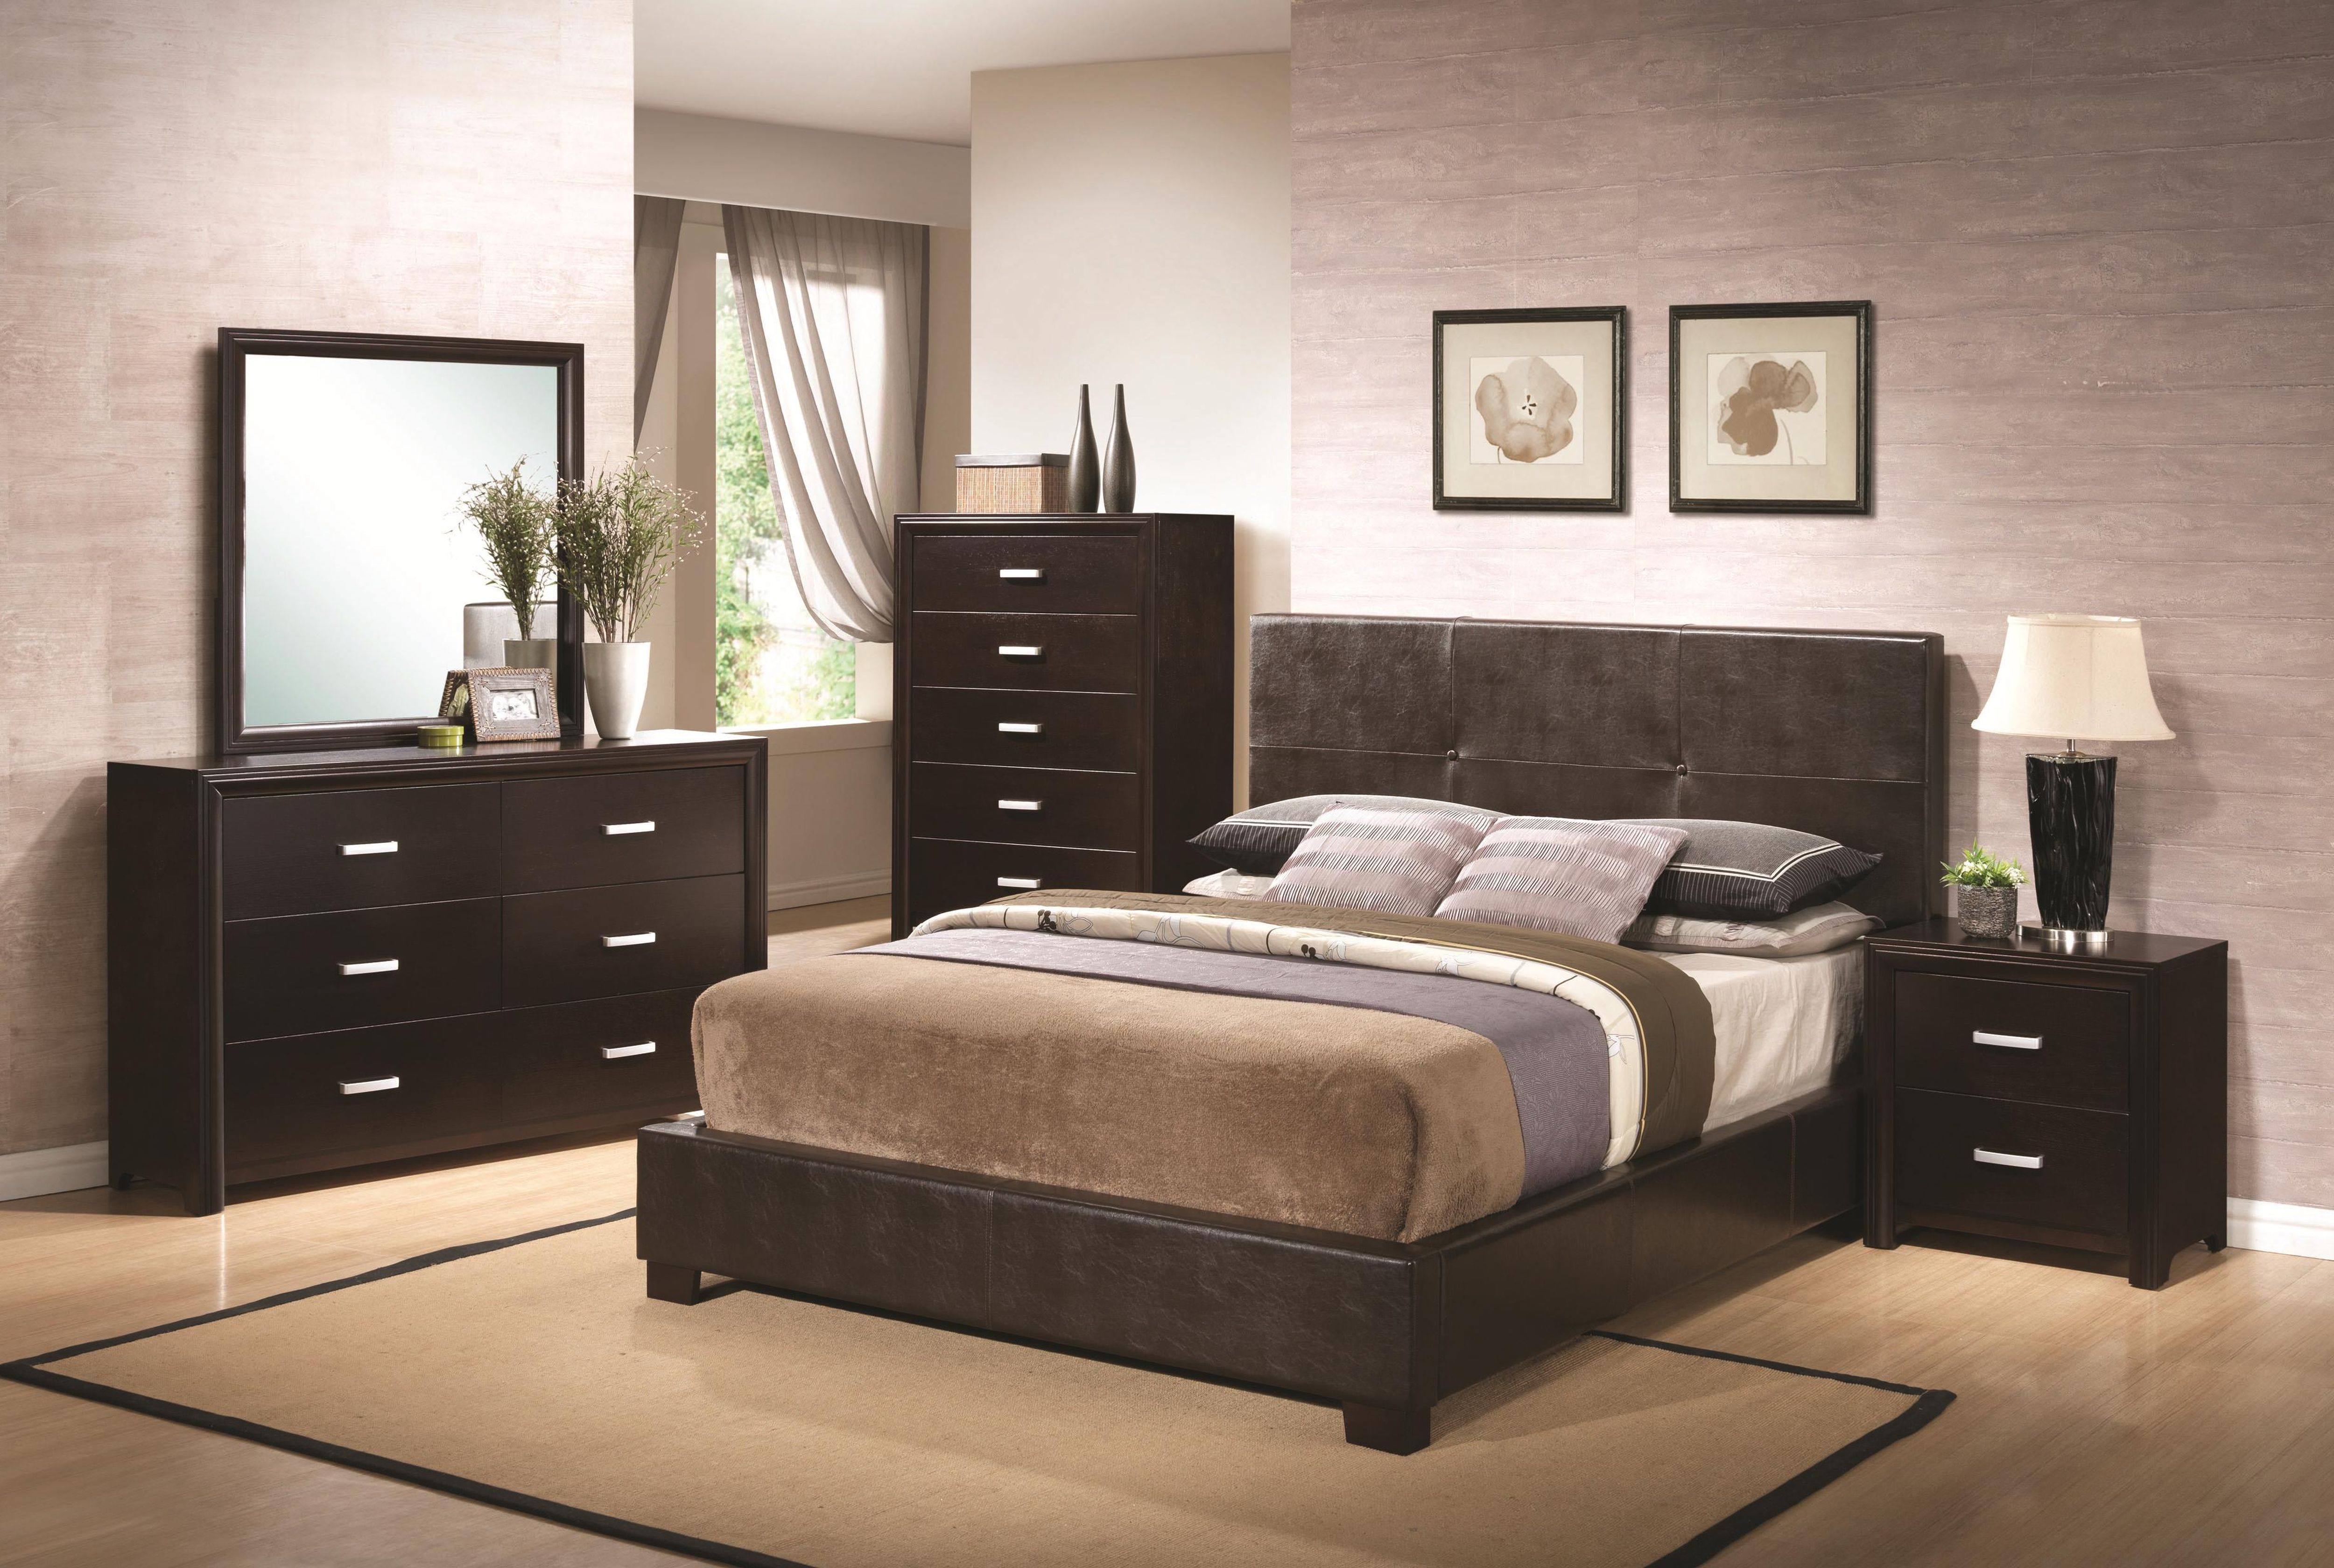 Bedroom Furniture Ideas Ikea Hawk Haven